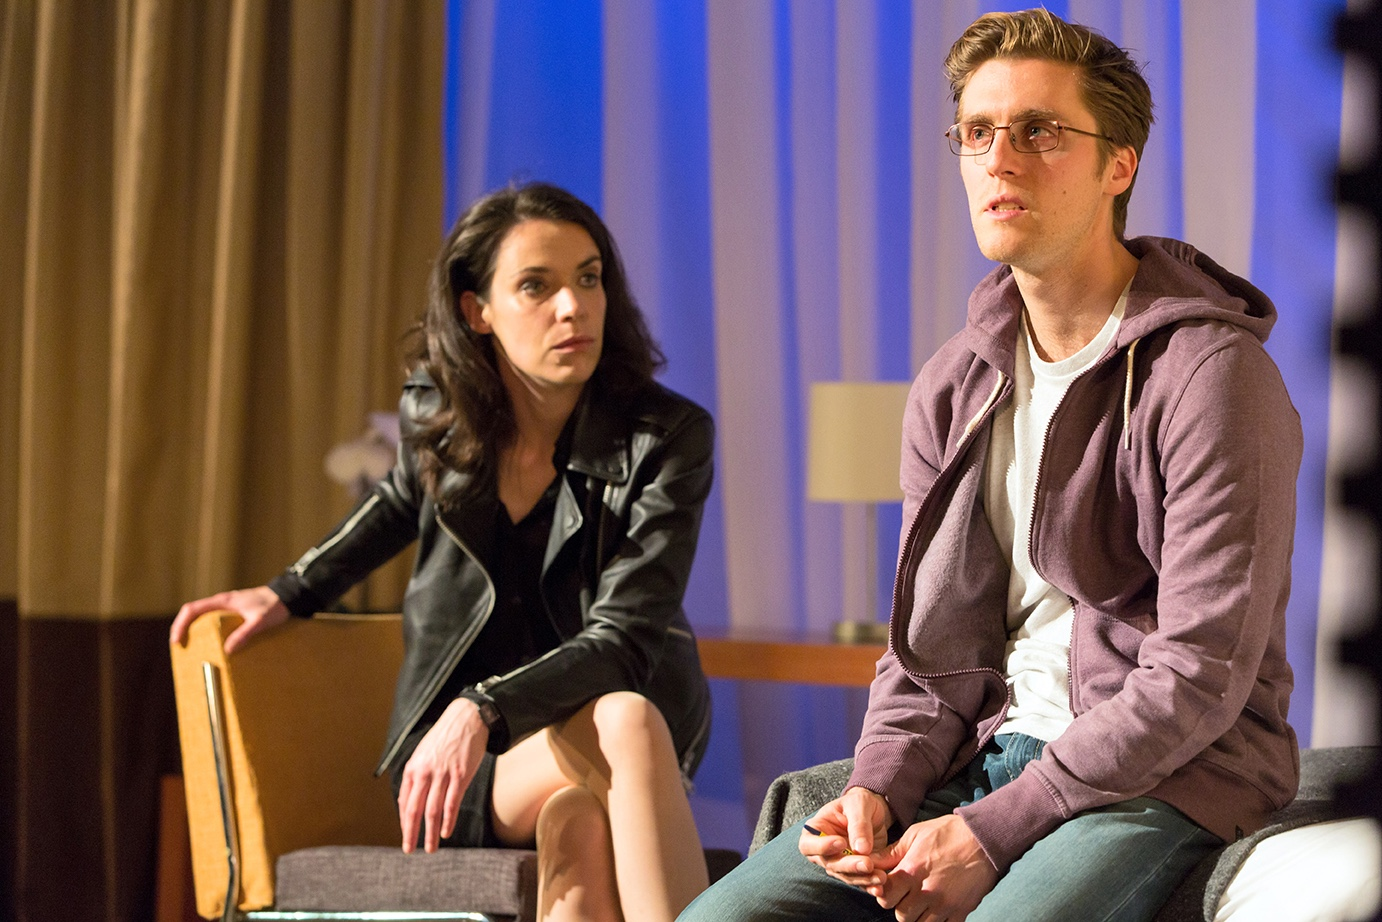 A woman in a black jacket sits crossed legged on a wooden chair. Just in front of her, to the right, is a man with a light purple hooded fleece, glasses and jeans, resting on the edge of a hotel room bed.